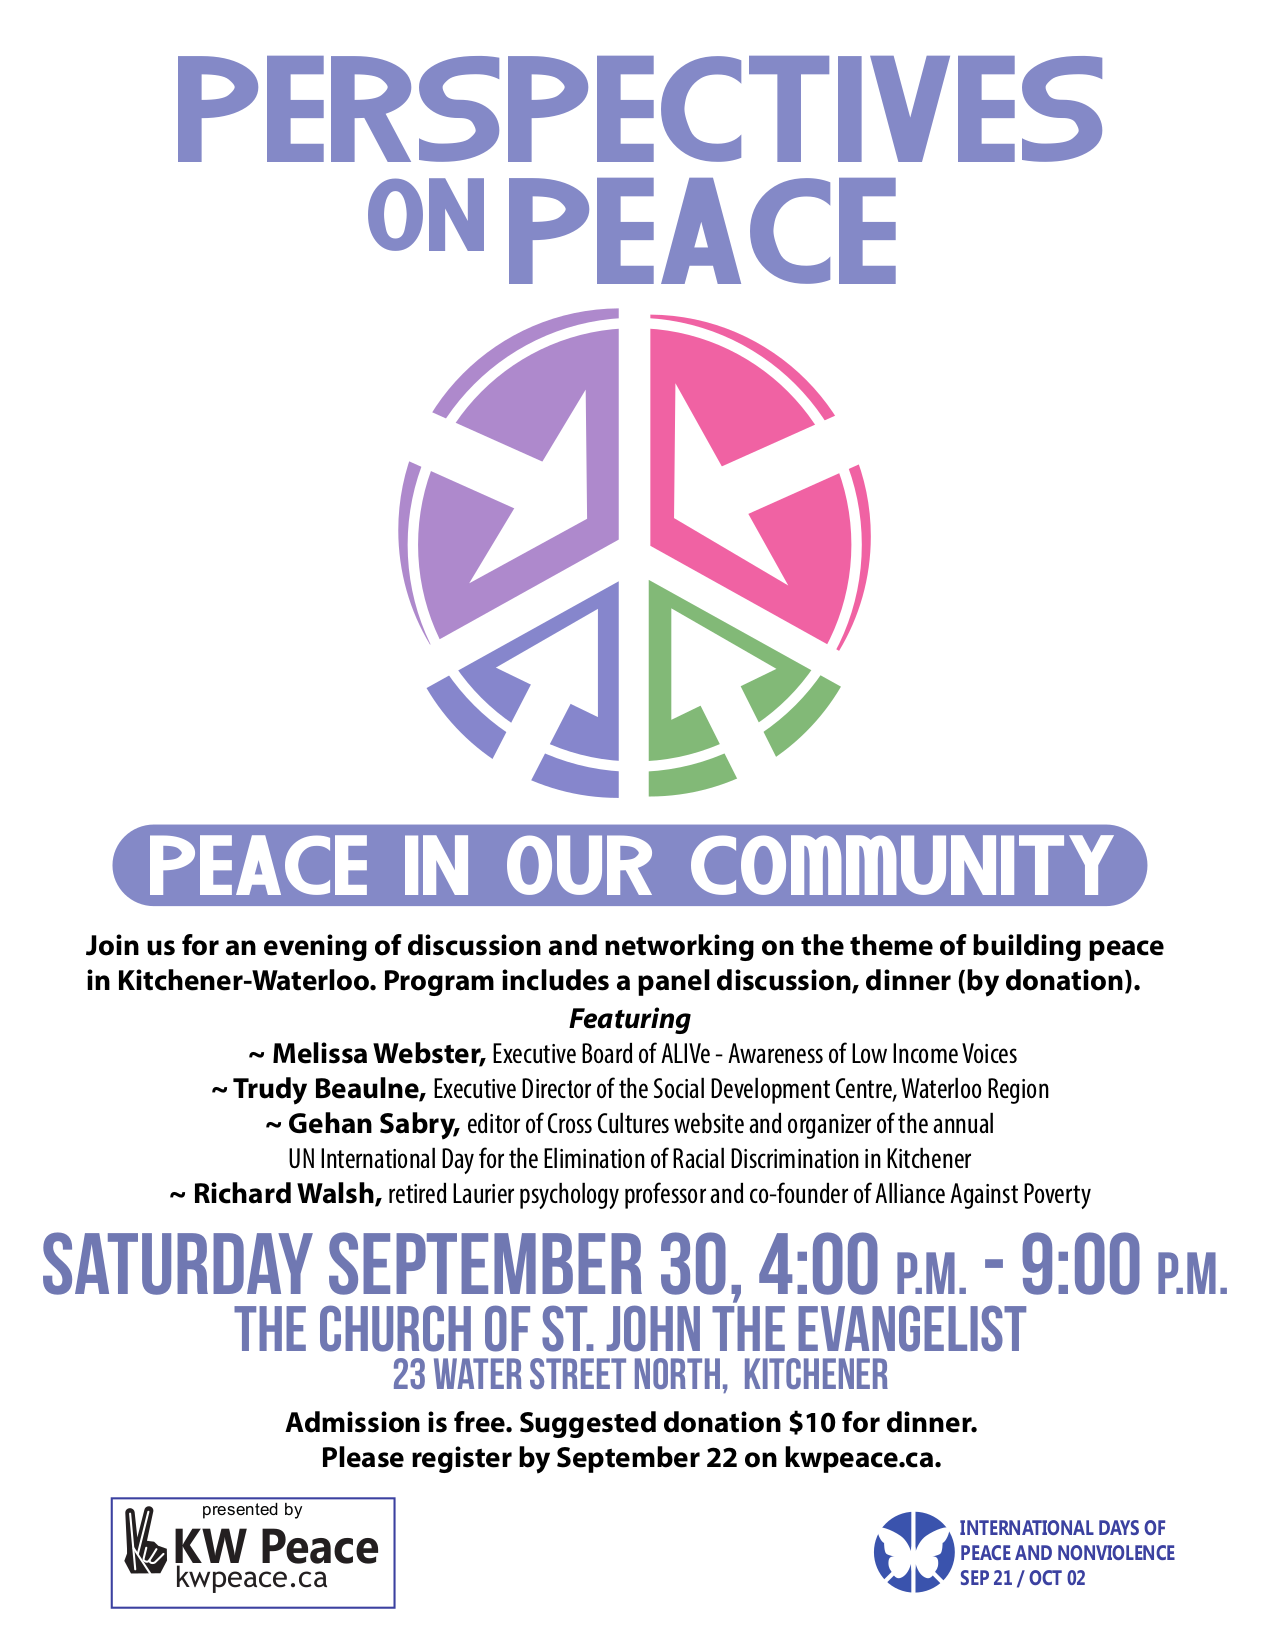 how to make peace in our community